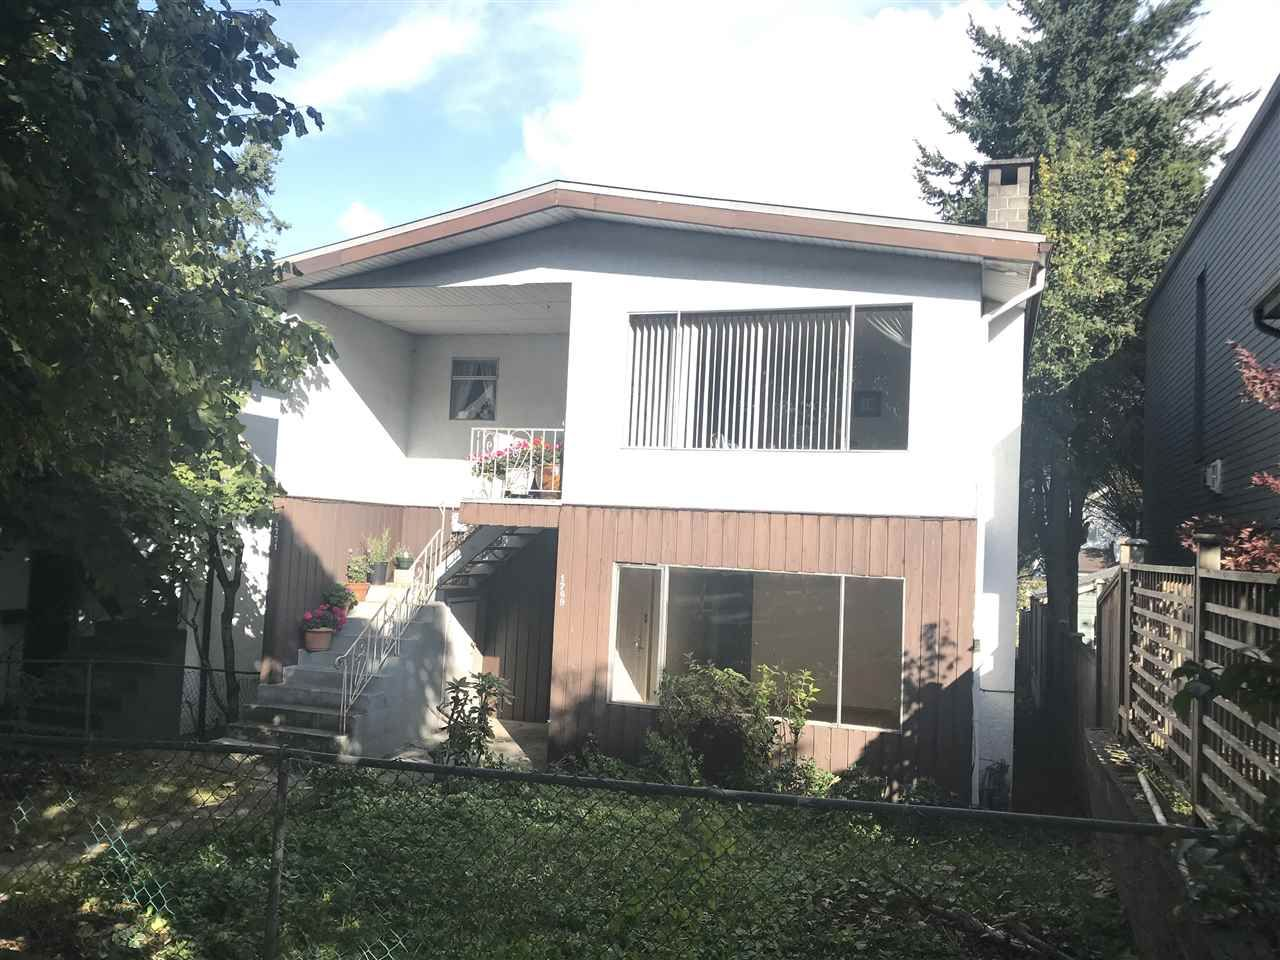 Main Photo: 1769 E 8TH Avenue in Vancouver: Grandview Woodland House for sale (Vancouver East)  : MLS®# R2468441